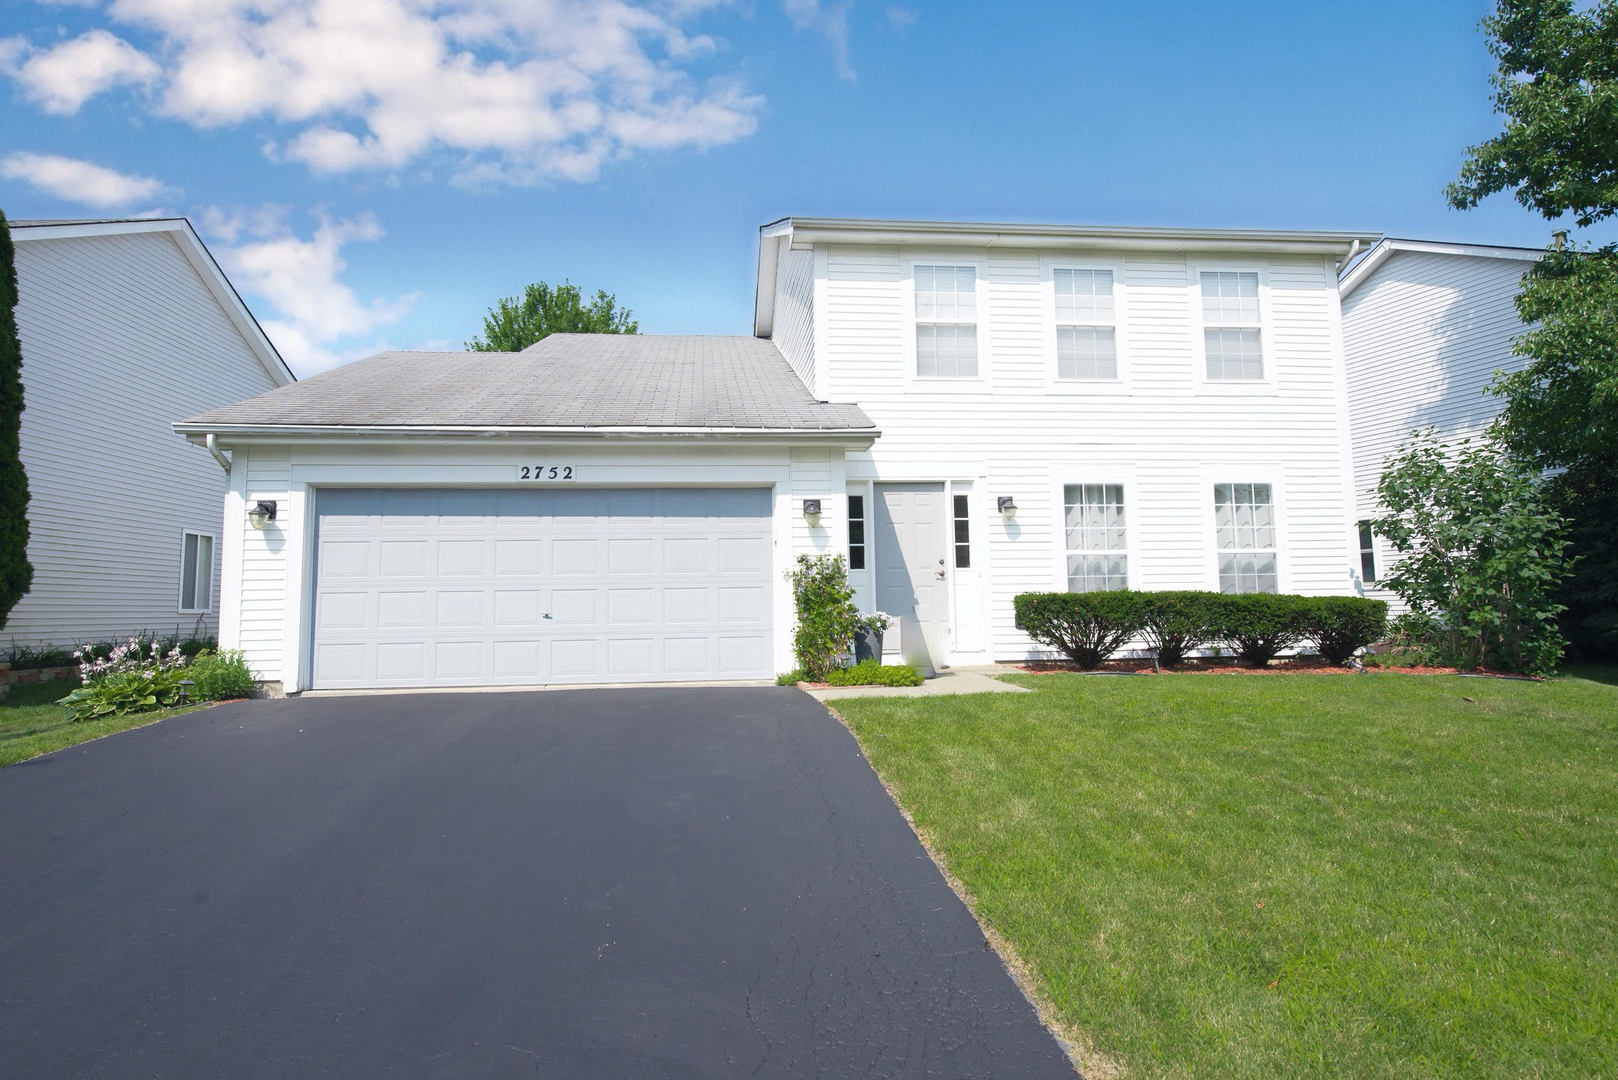 Photo for 2752 Bluewater Circle, Naperville, IL 60564 (MLS # 10464899)